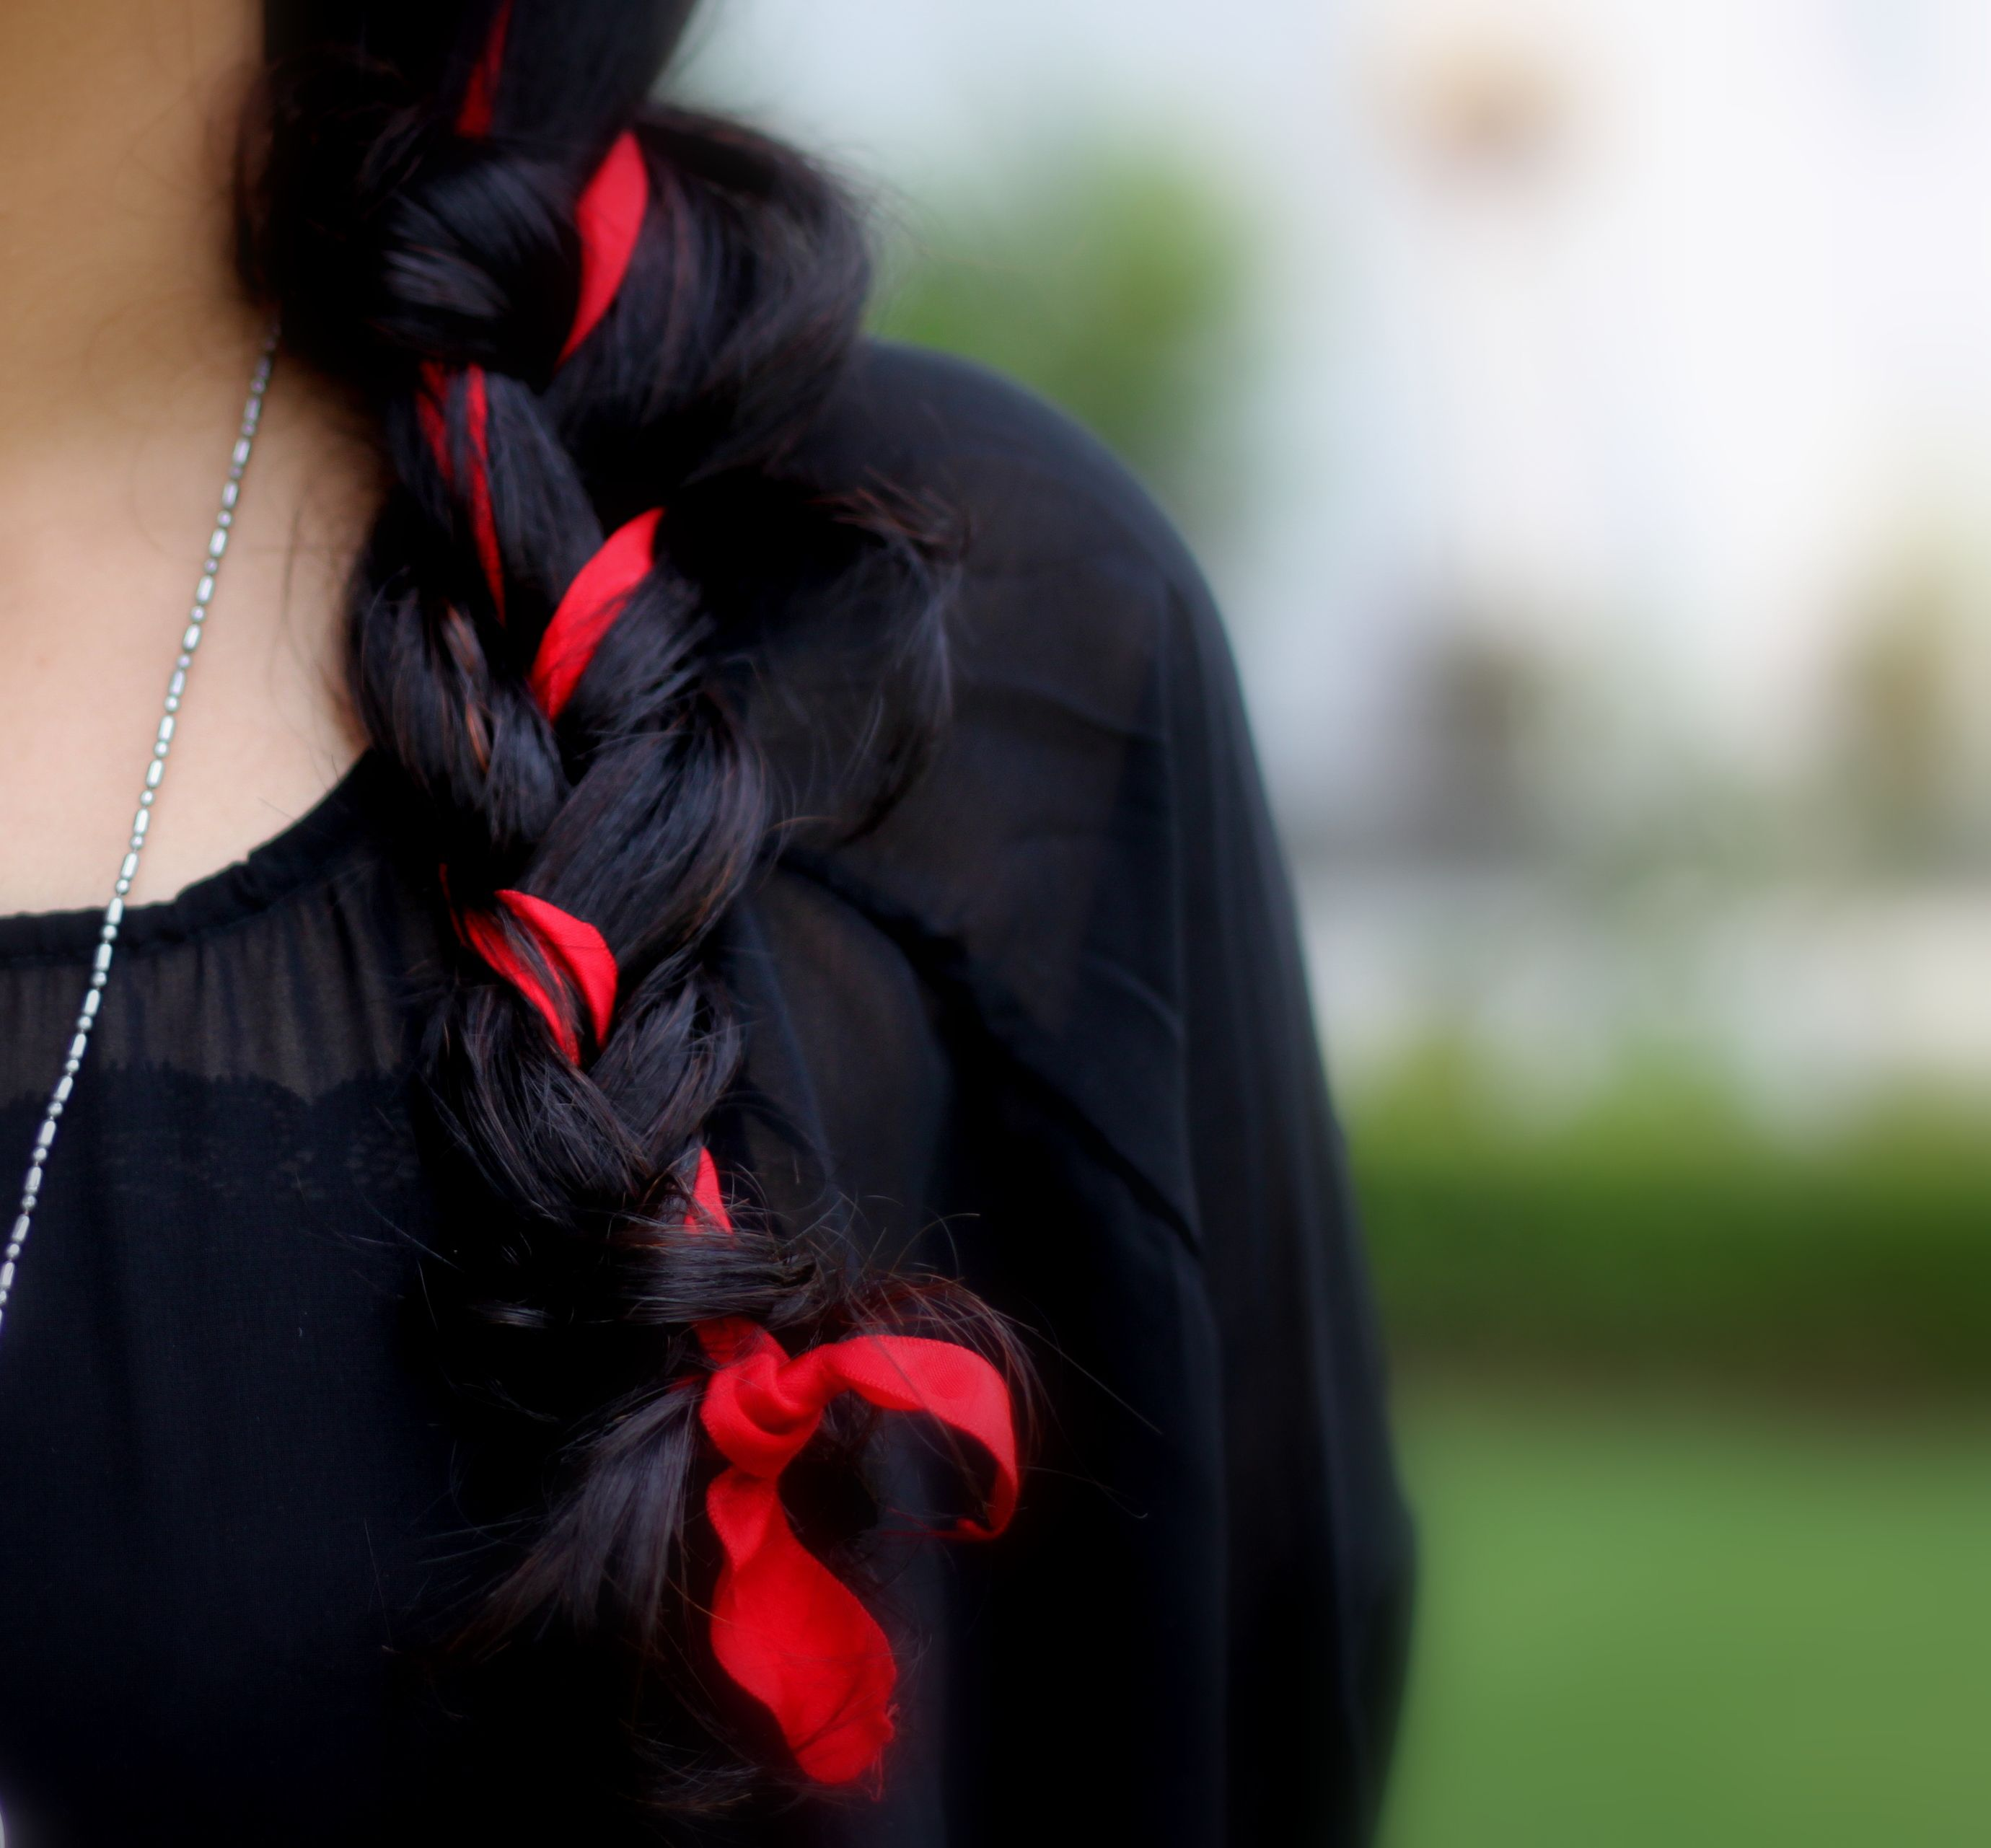 Modern Indian Bride Hairstyle: Chic Way To Wear A Simple Ribbon In Your Hair